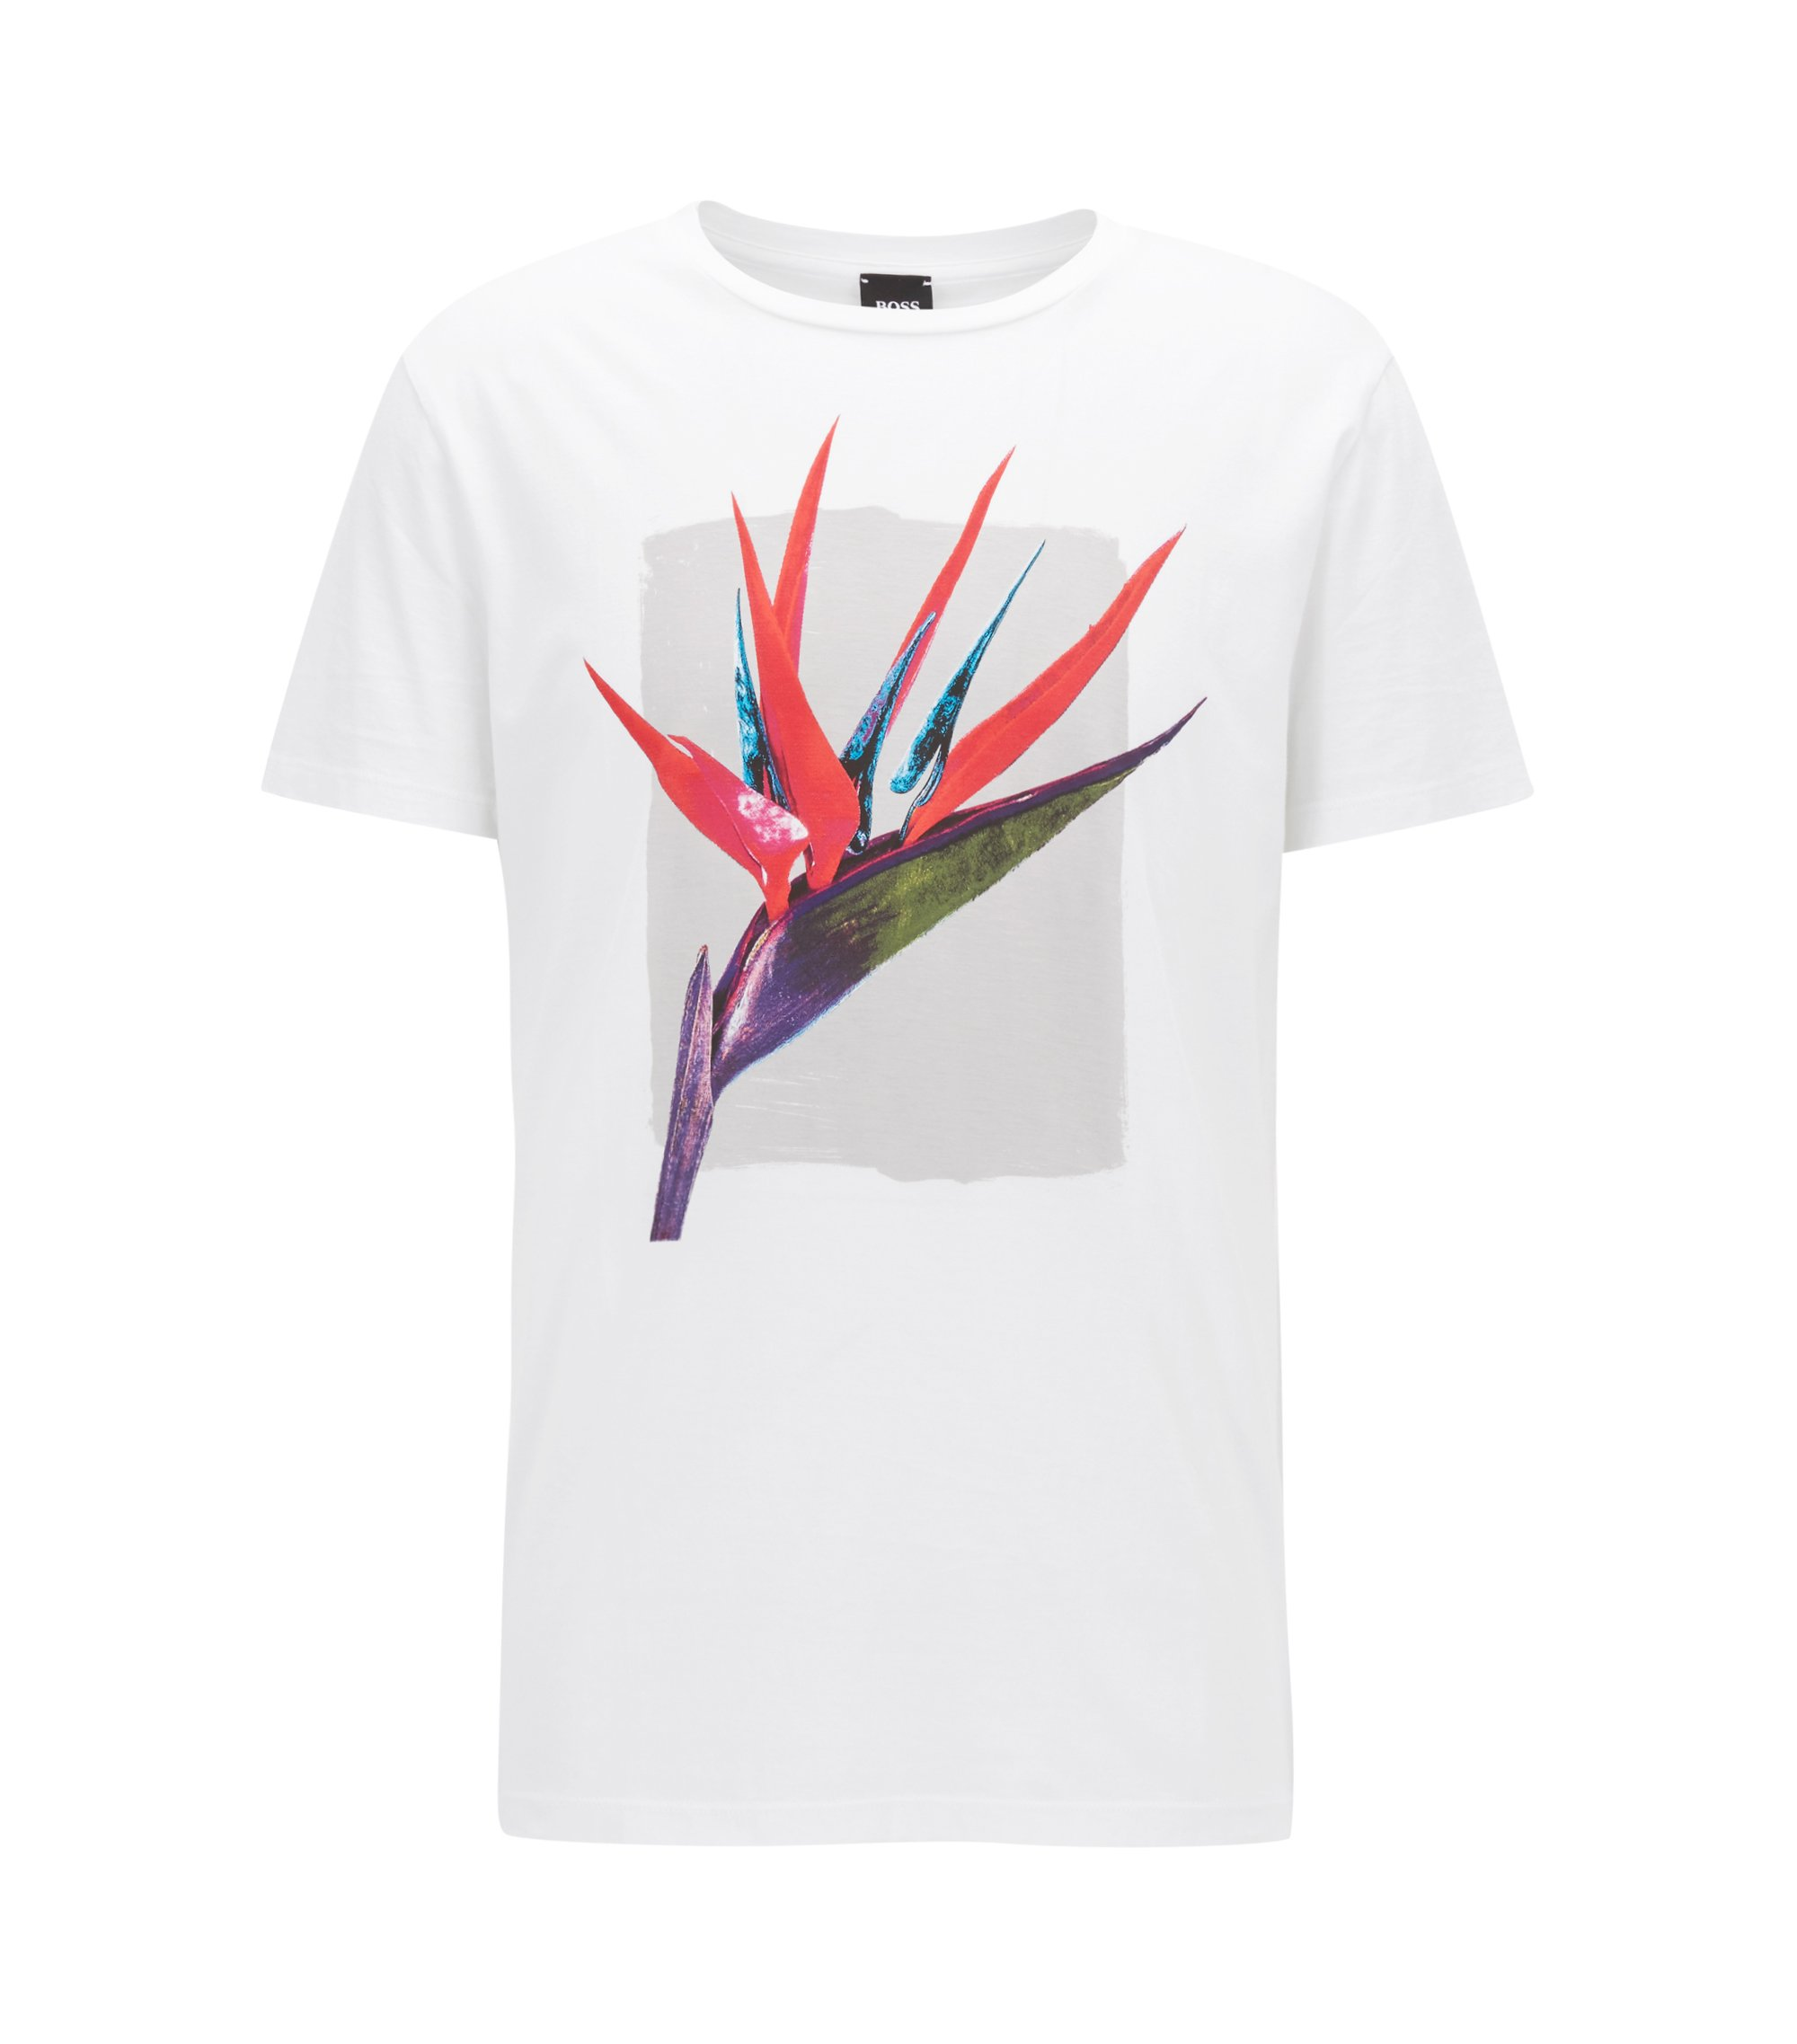 T-shirt relaxed fit in cotone Pima con stampa grafica mista, Bianco